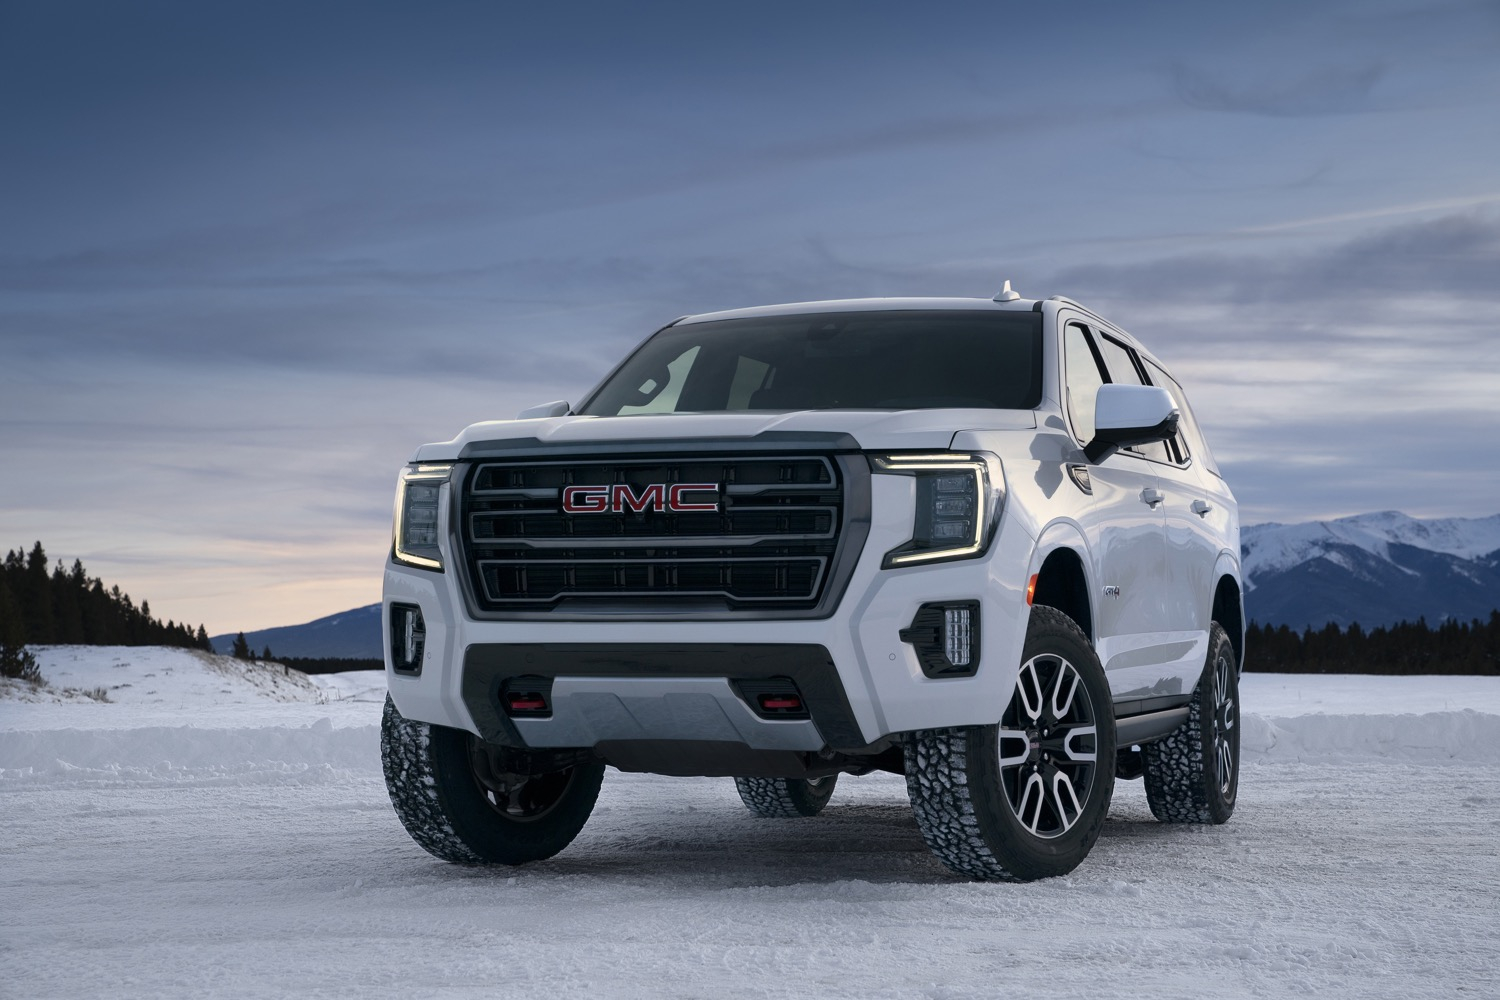 This Is The 2021 Gmc Yukon And Yukon Xl | Gm Authority New 2022 Buick Verano Upgrades, Towing Capacity, Ground Clearance